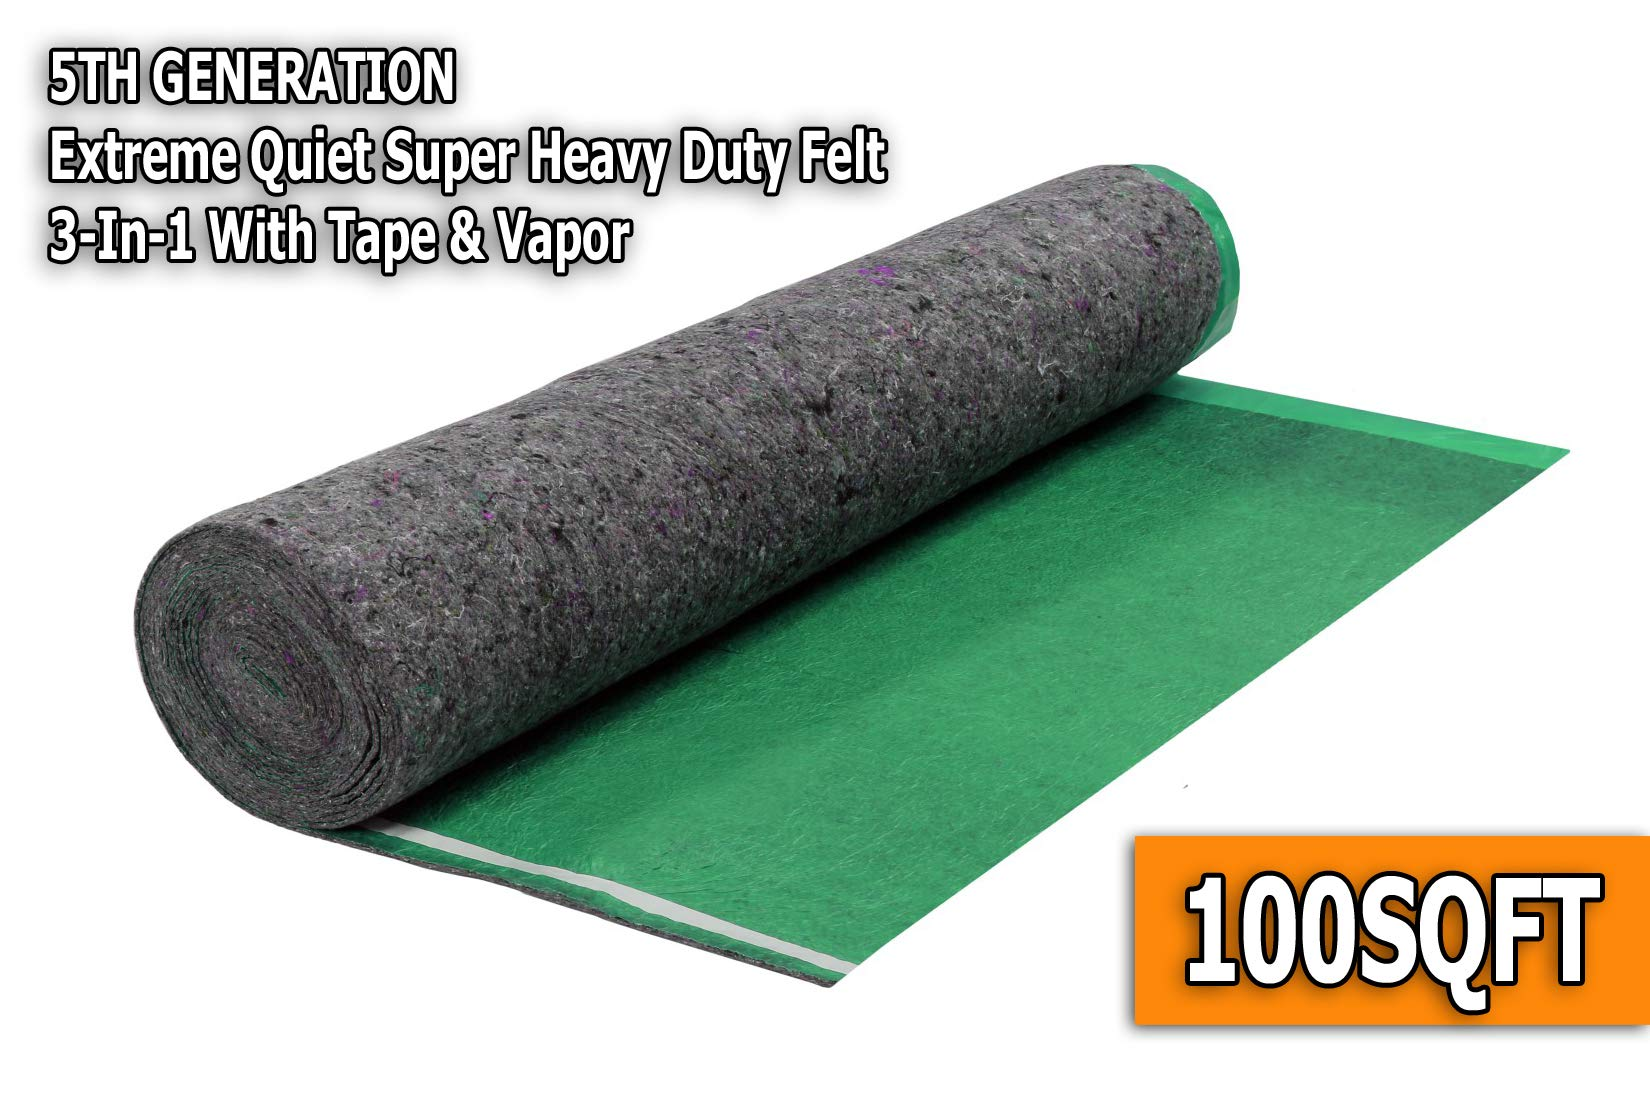 AMERIQUE 691322307030 Emerald Green 100SQFT 5TH Generation Extreme Quiet Super Heavy Duty Felt 3-in-1 Underlayment Padding with Tape & Vapor Barrier, 3.2MM, 100 sq. ft Square Feet